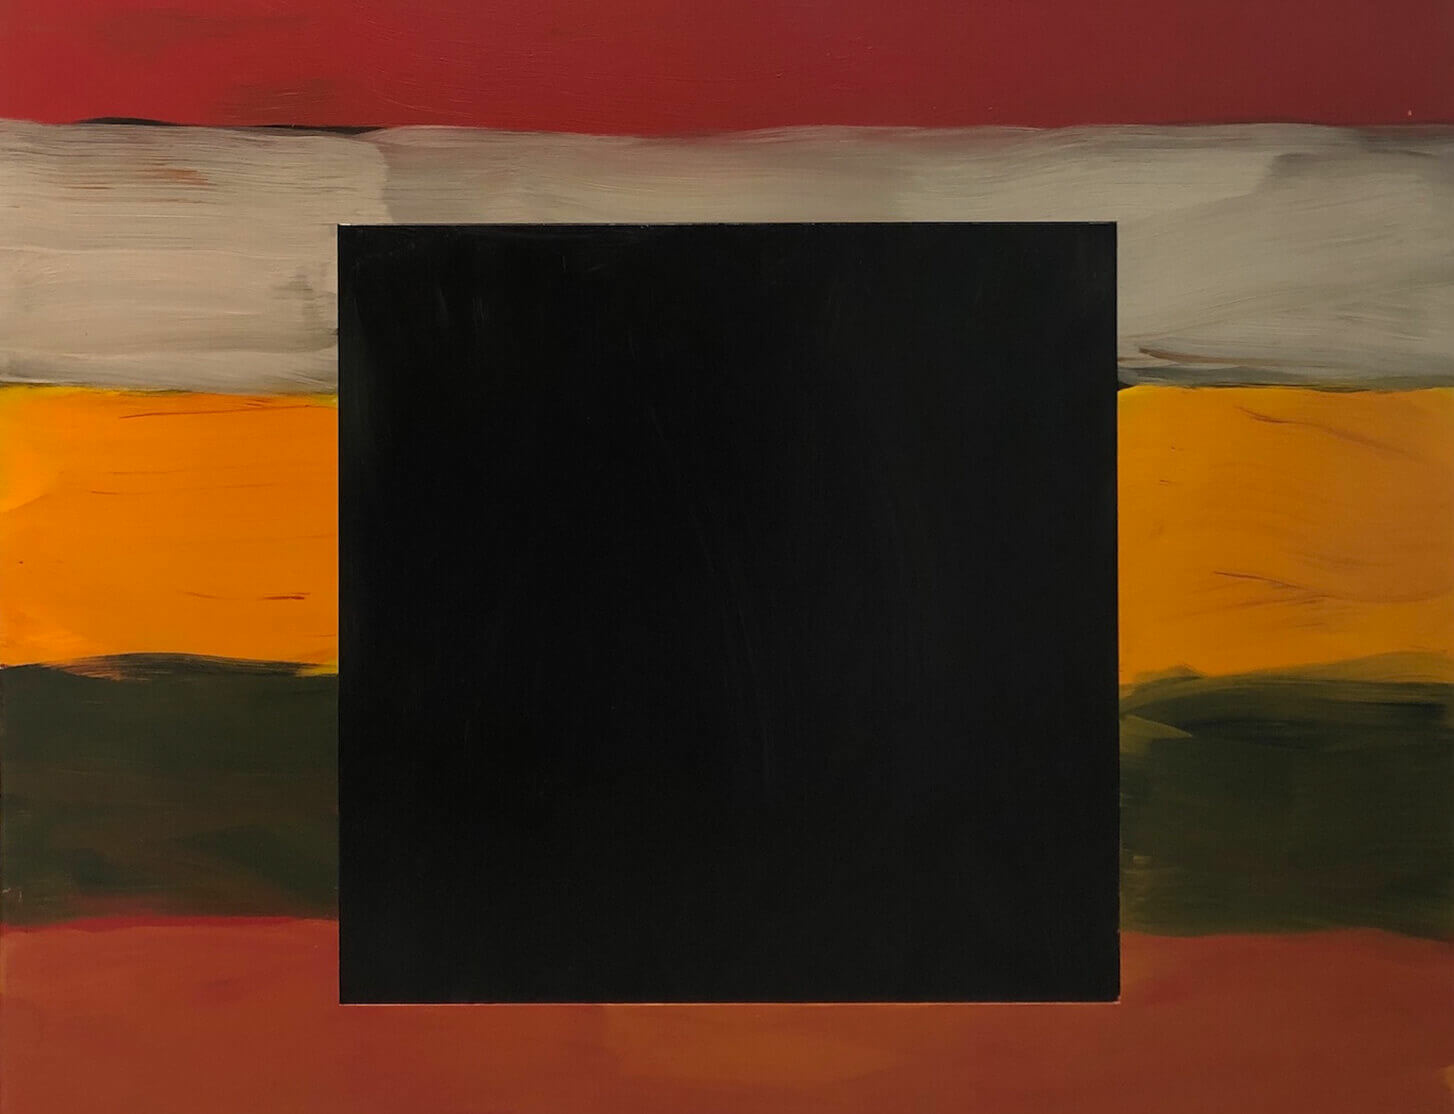 Sean Scully's 'Black Square' by David Carrier - Hyperallergic